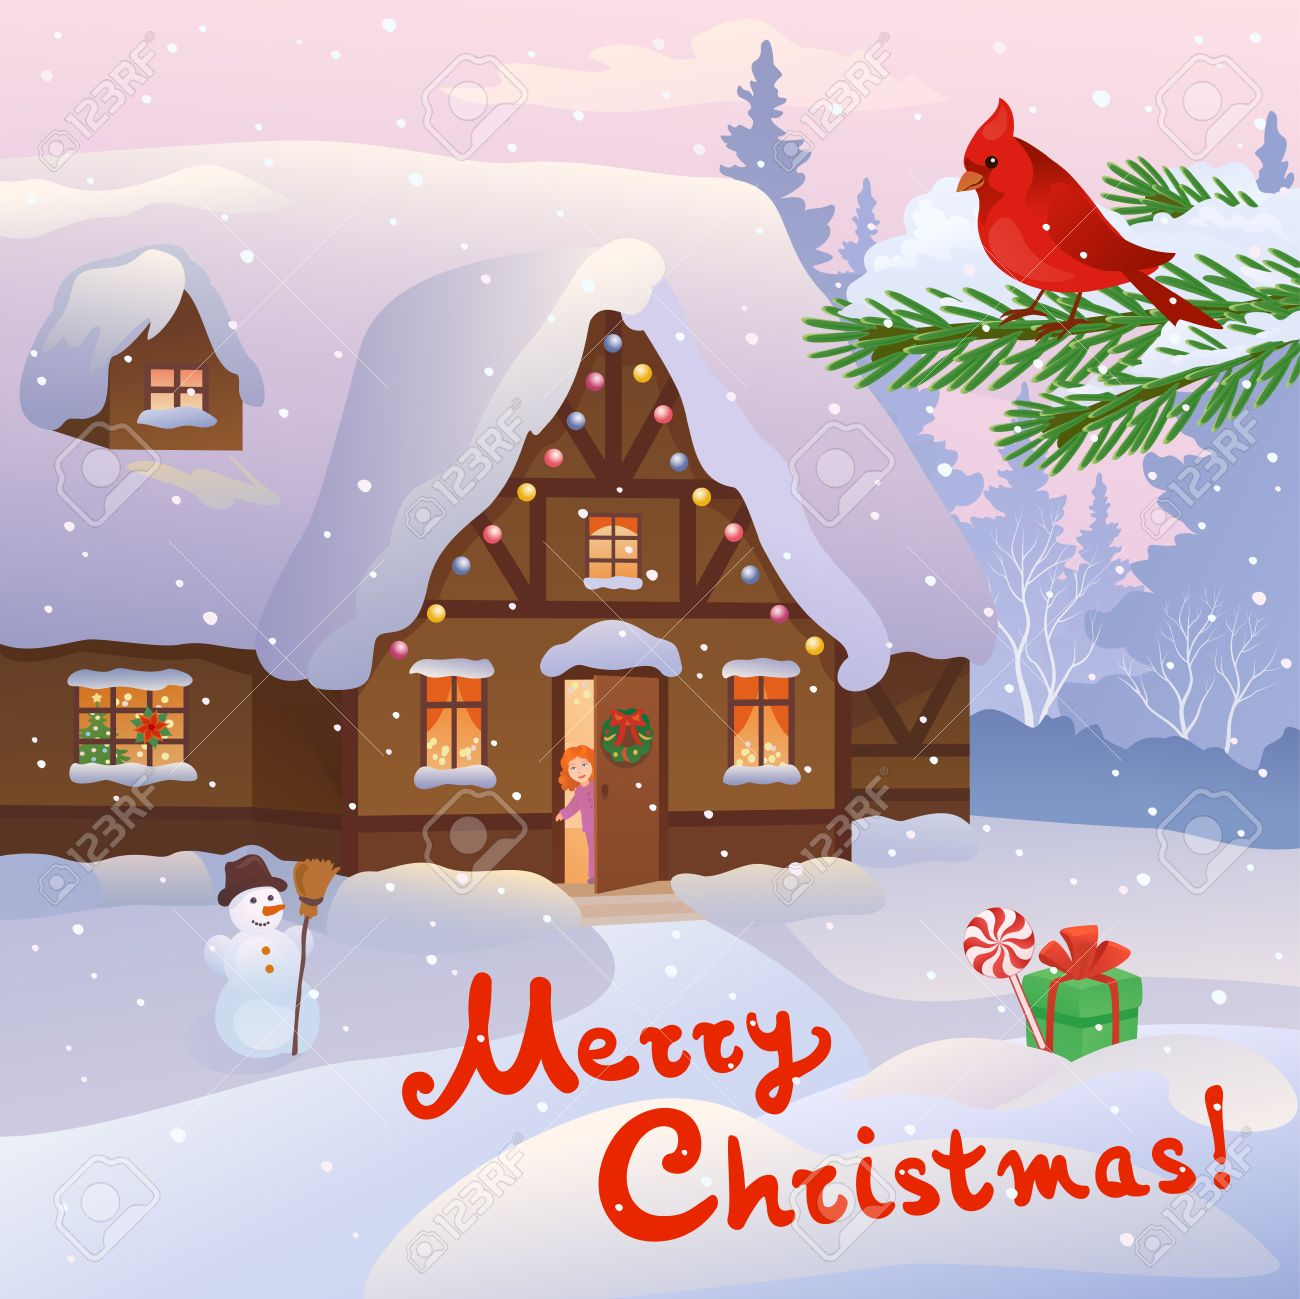 The Christmas Cottage.Vector Cartoon Illustration Of A Christmas Cottage And A Little